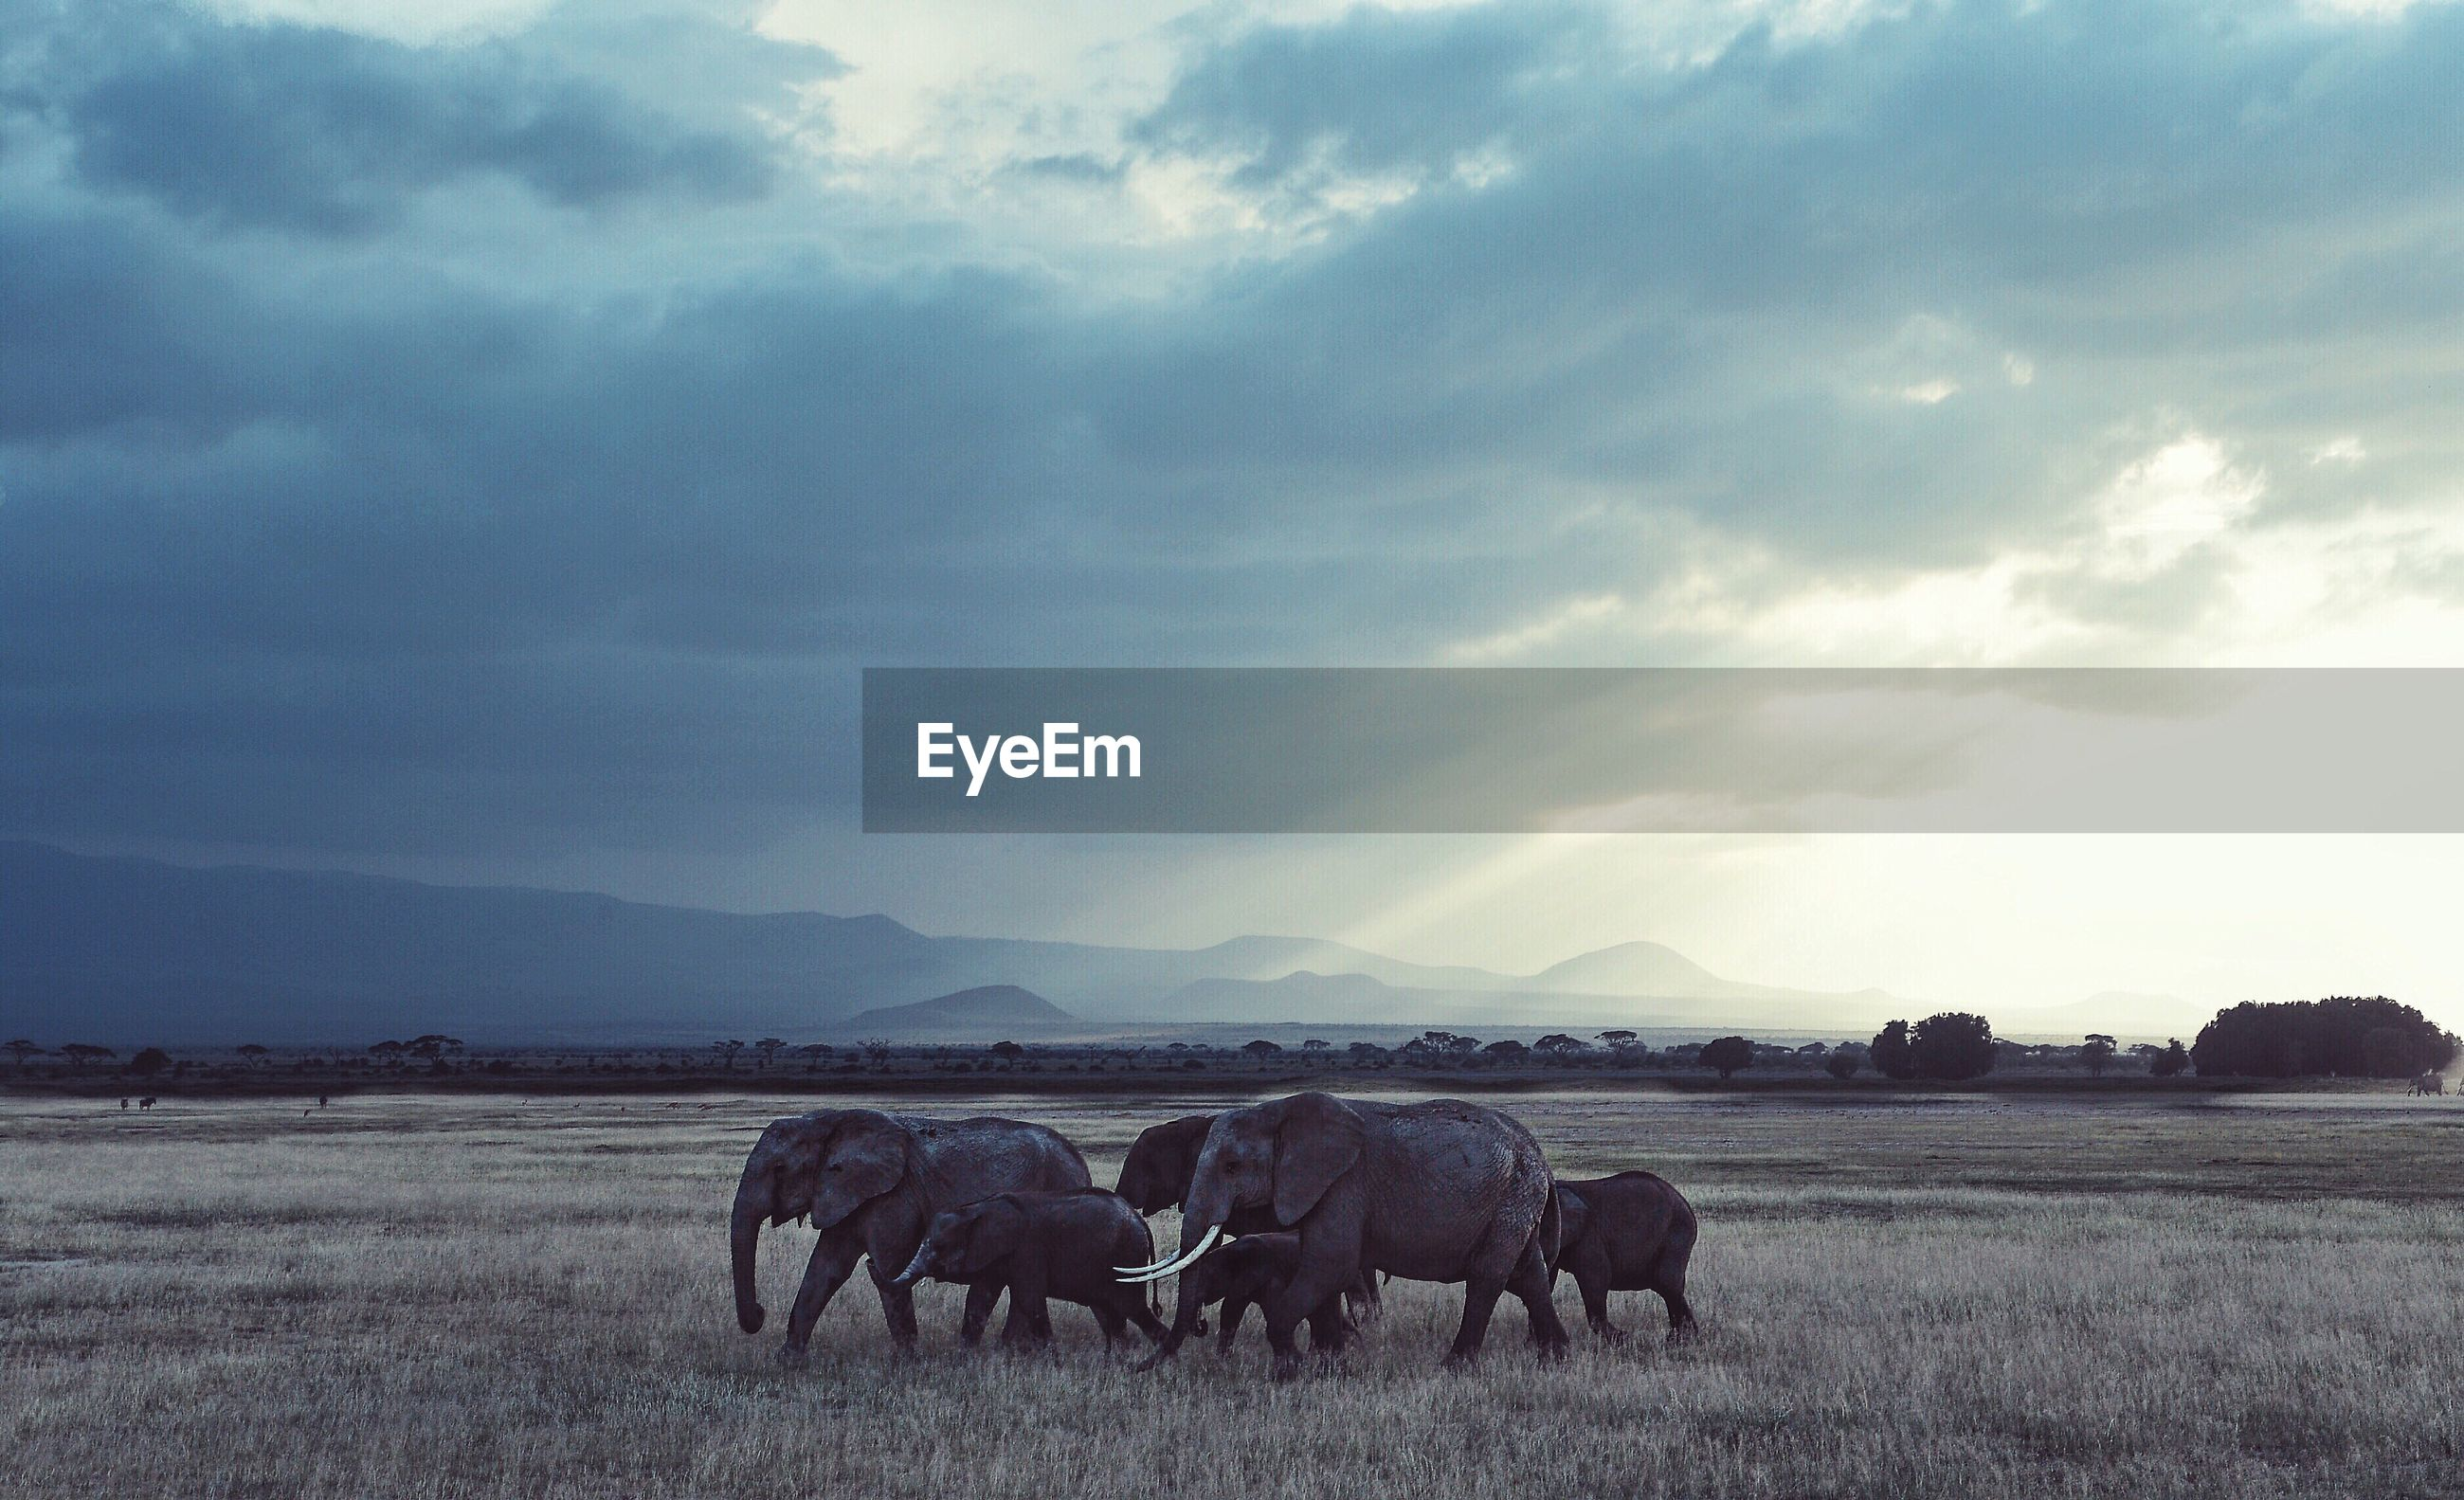 Elephants on field at amboseli national park against cloudy sky